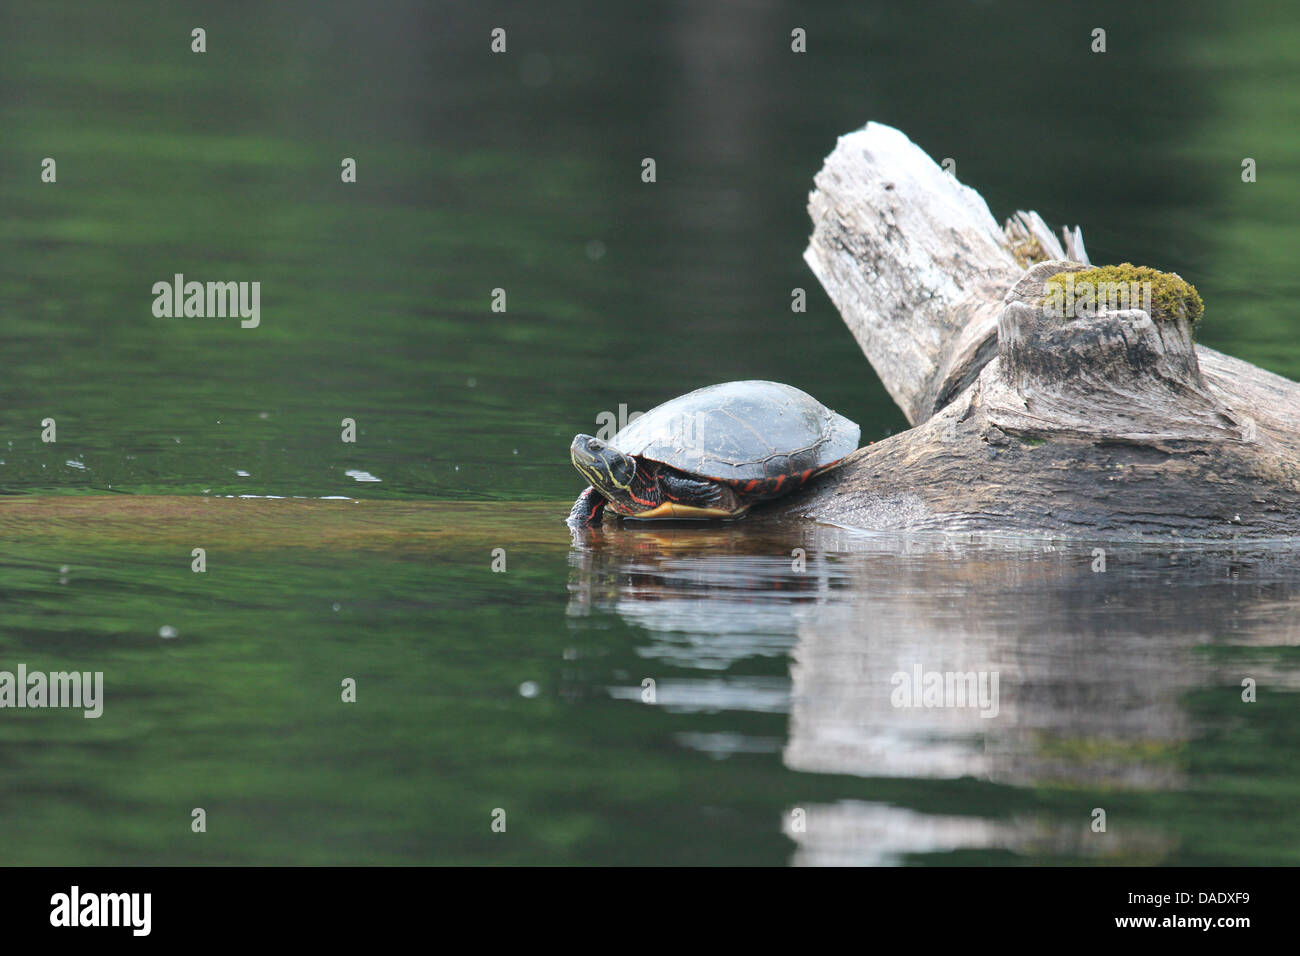 Turtle on log in pond Stock Photo